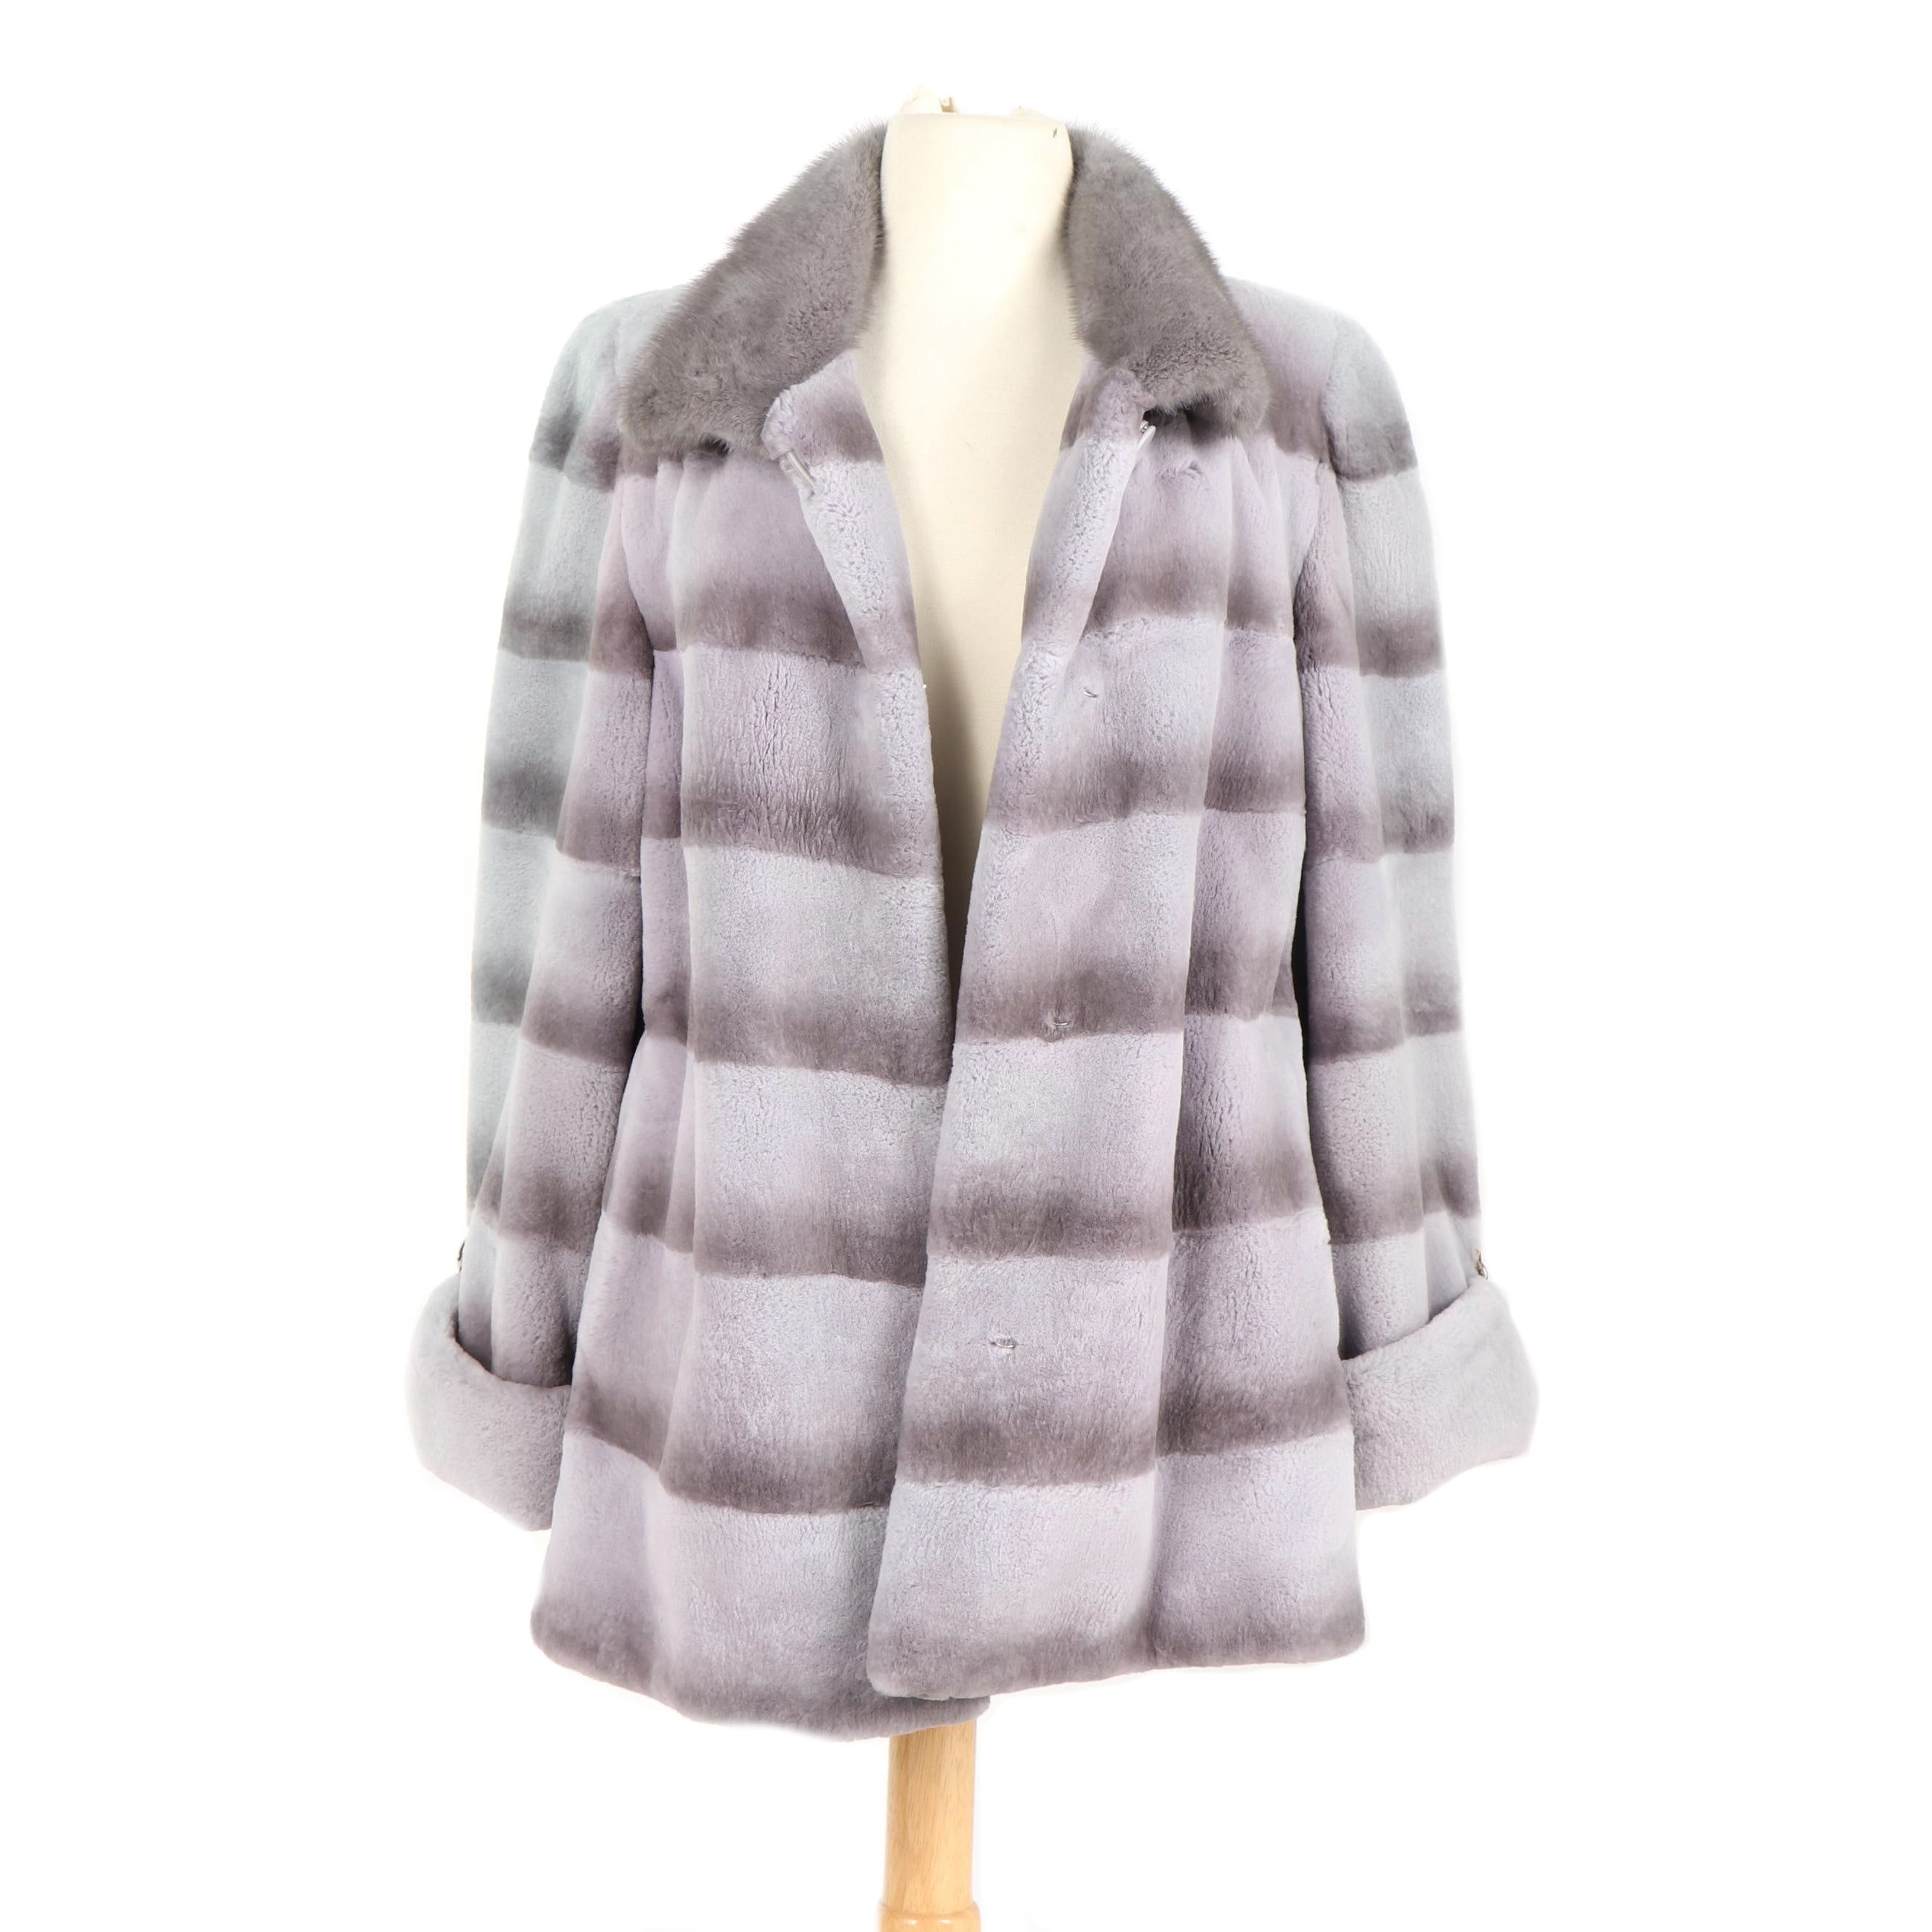 Dyed Sheared Rex Rabbit Fur Jacket with Mink Fur and Python Snakeskin Bands